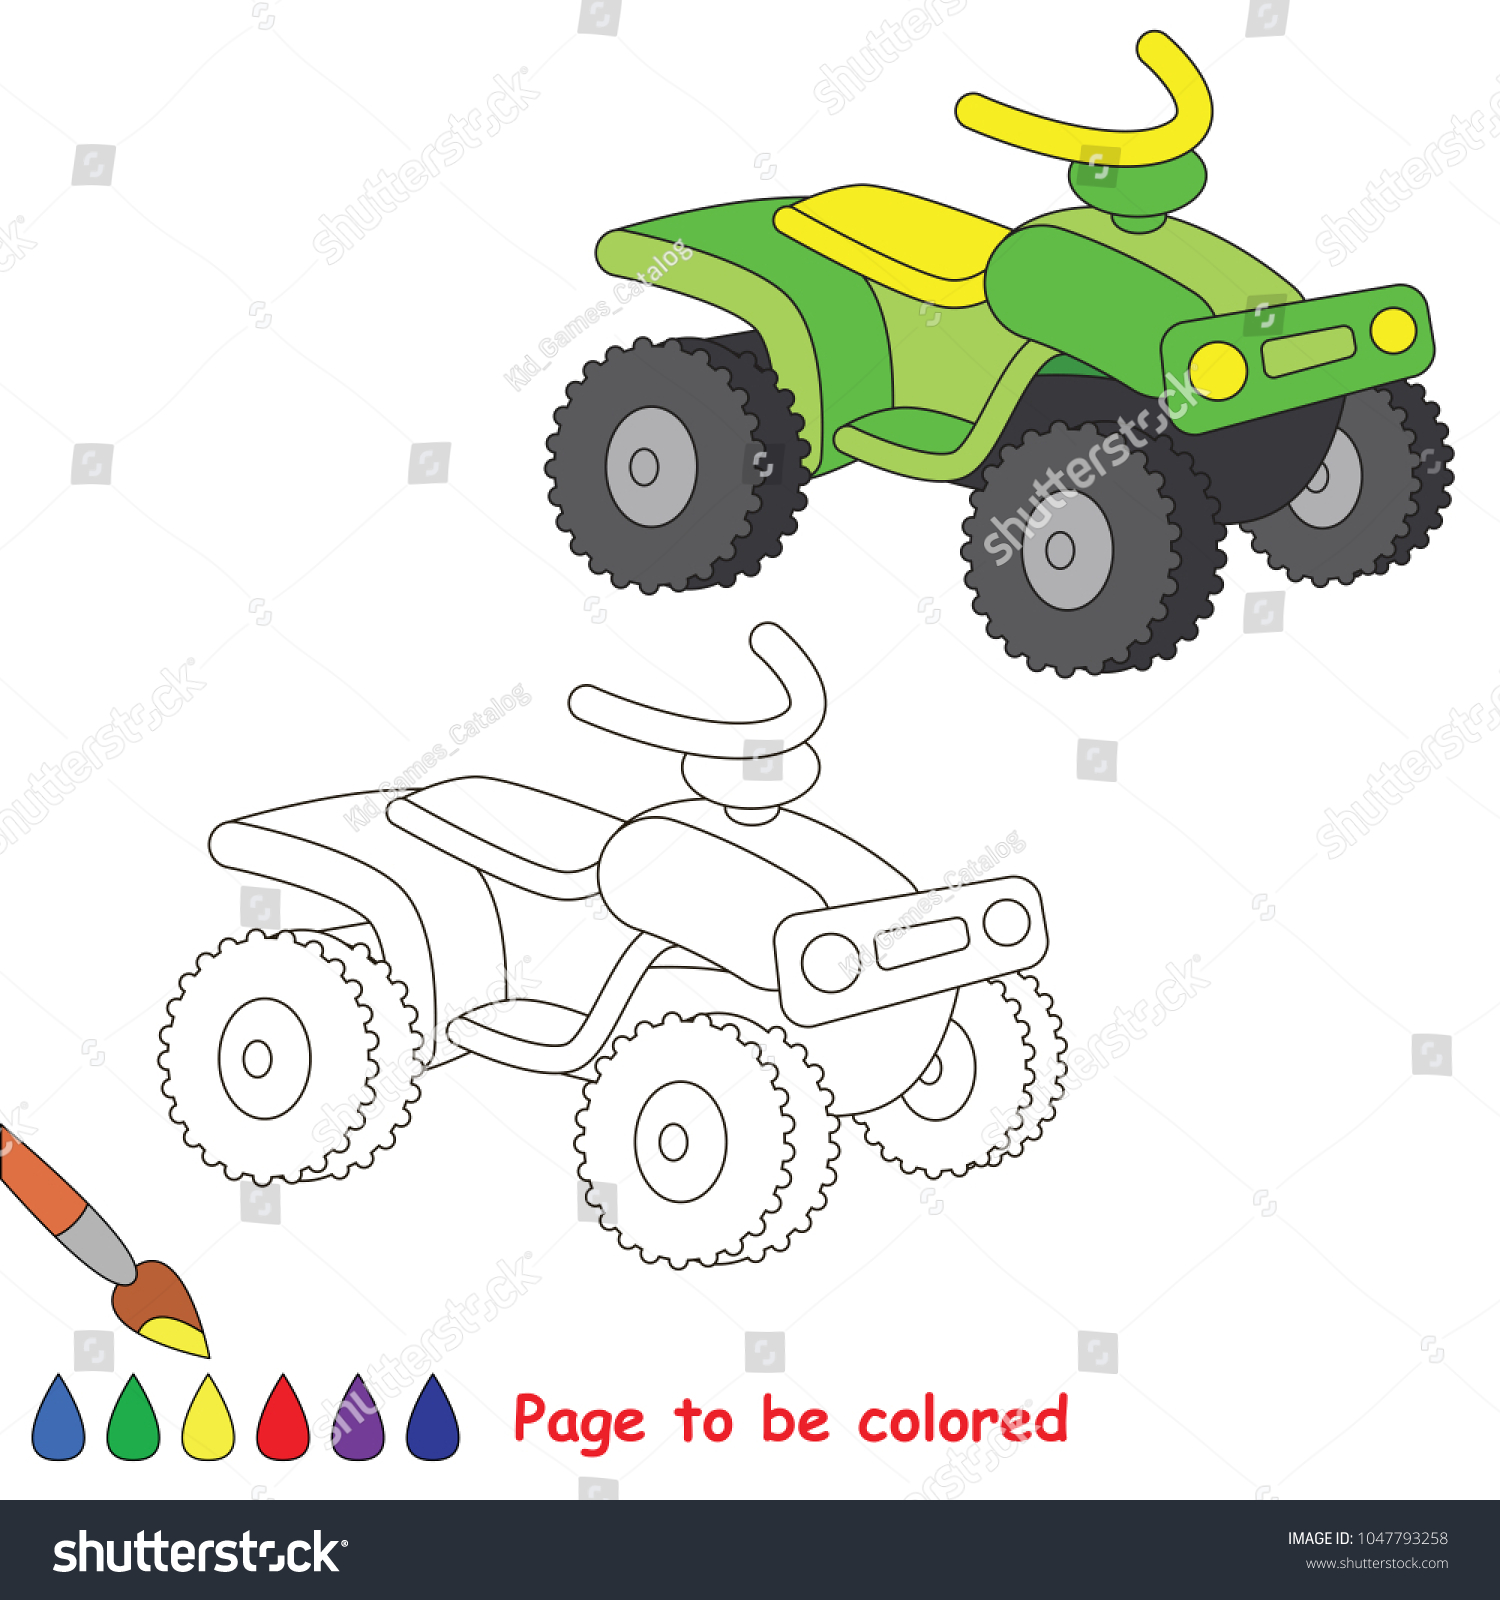 Green Quad Bike Be Colored Coloring Stock Vector (Royalty Free ...